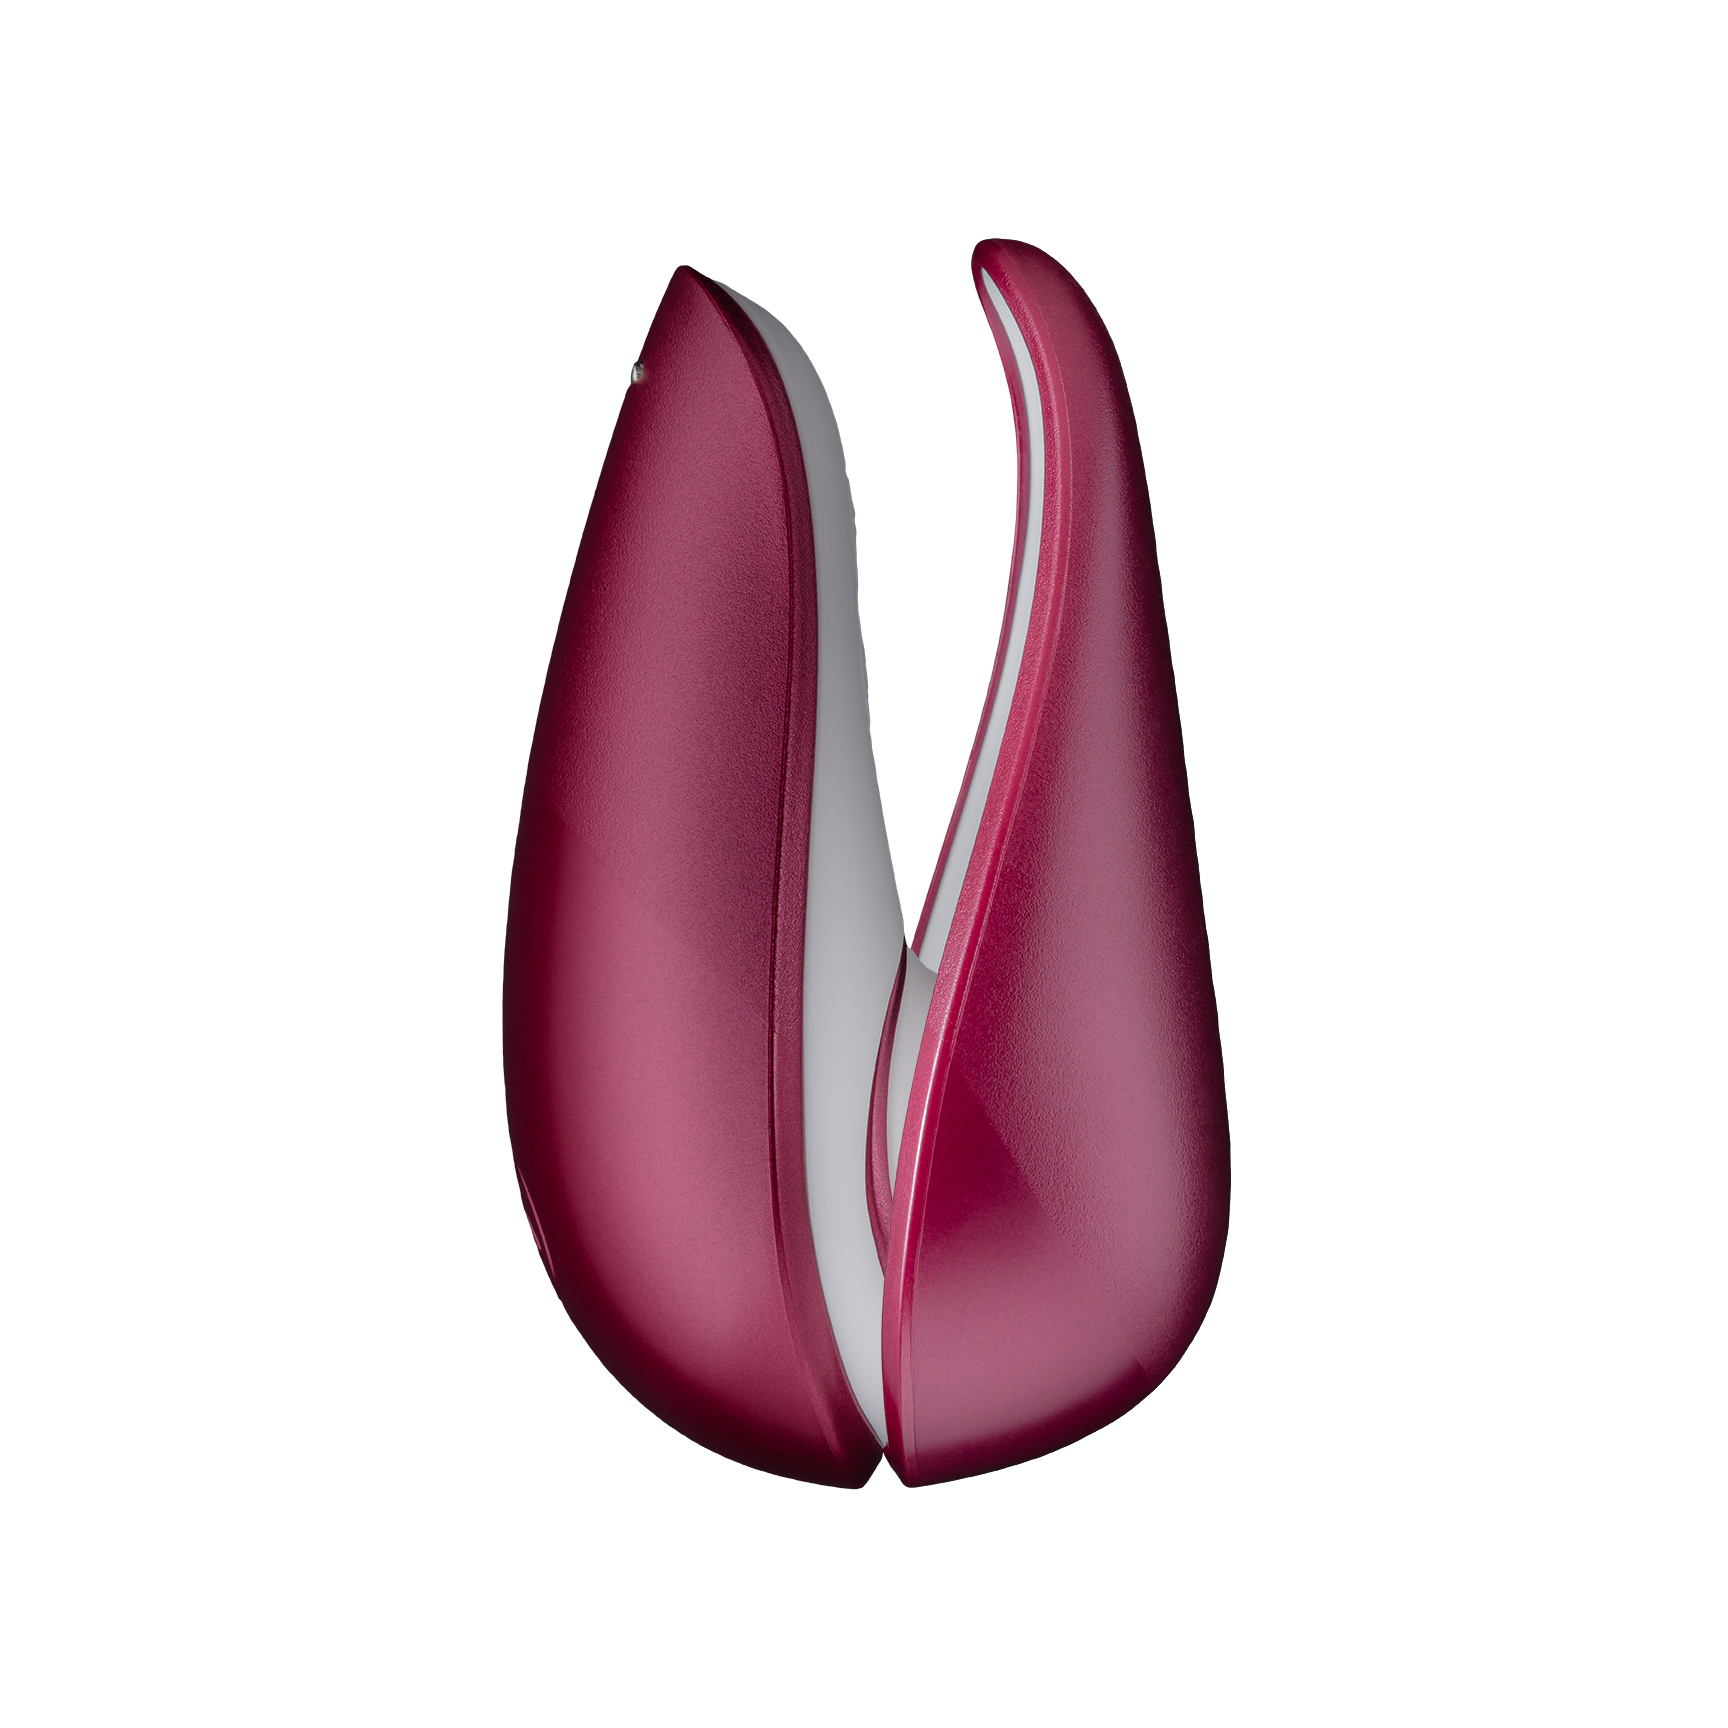 Jetzt diskret bestellen: Womanizer Liberty in Red Wine / 99,00 €